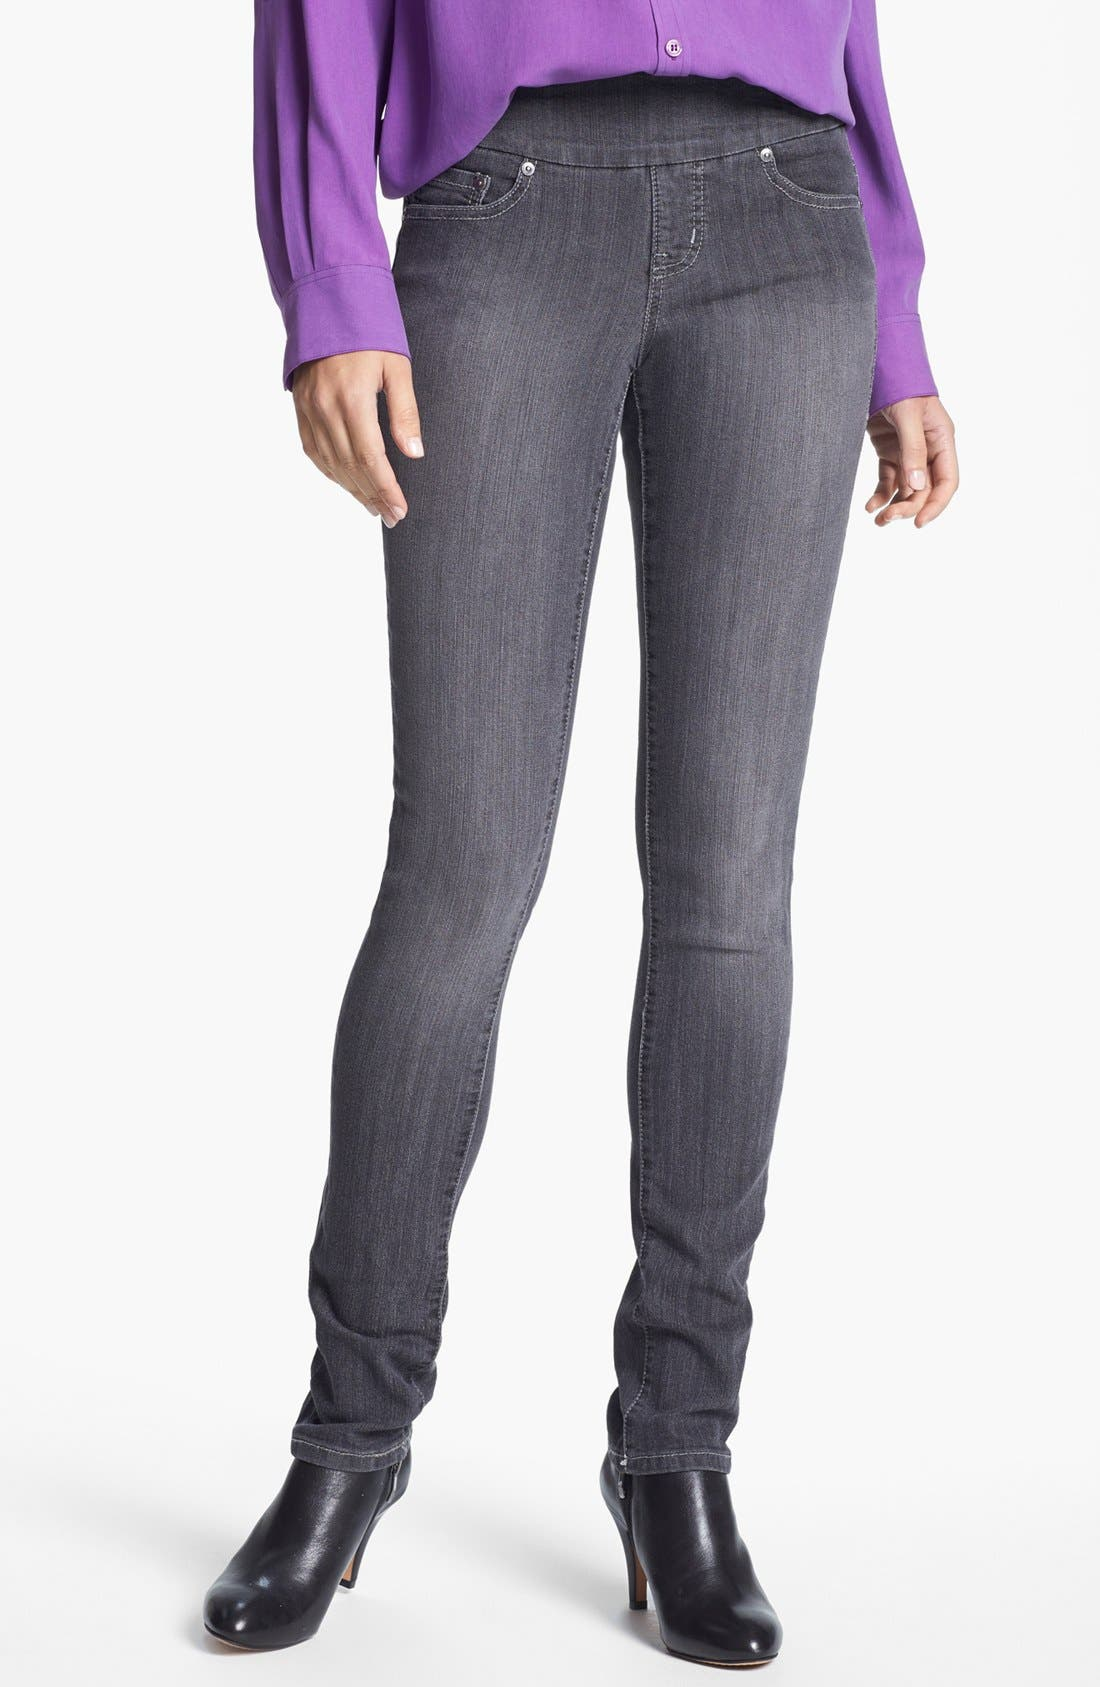 Alternate Image 1 Selected - Jag Jeans 'Malia' Slim Leg Stretch Jeans (Grey) (Petite)